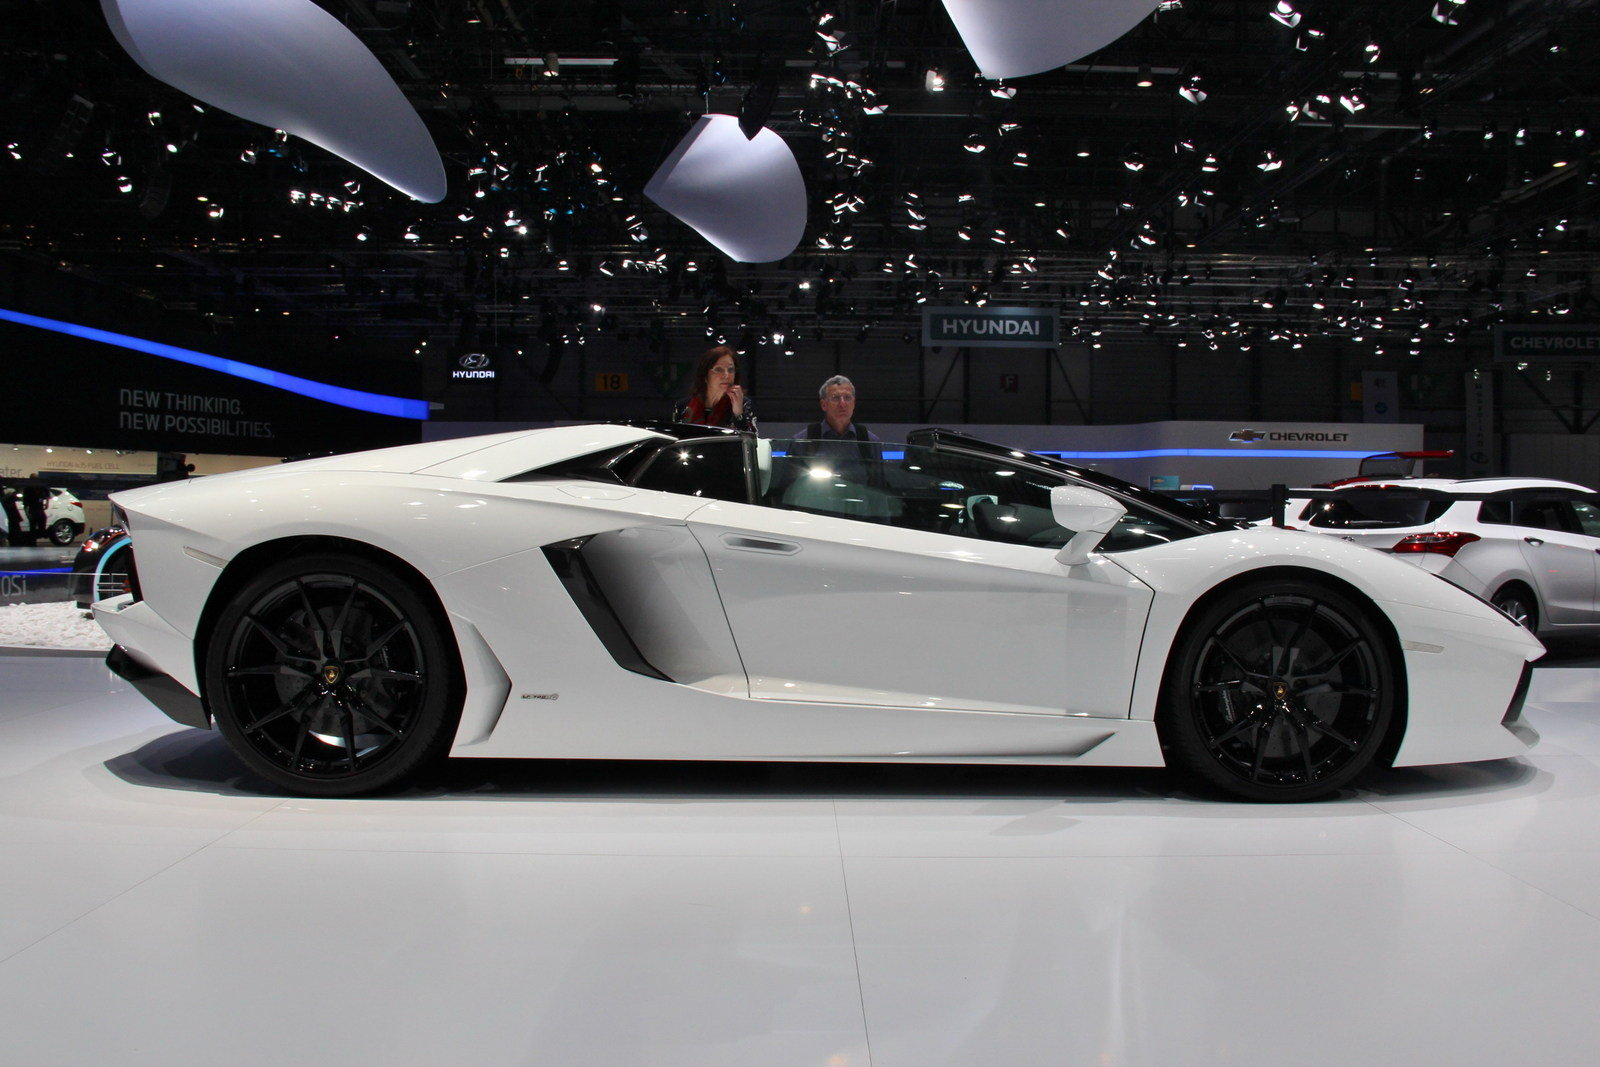 2013 lamborghini aventador lp700 4 roadster picture. Black Bedroom Furniture Sets. Home Design Ideas